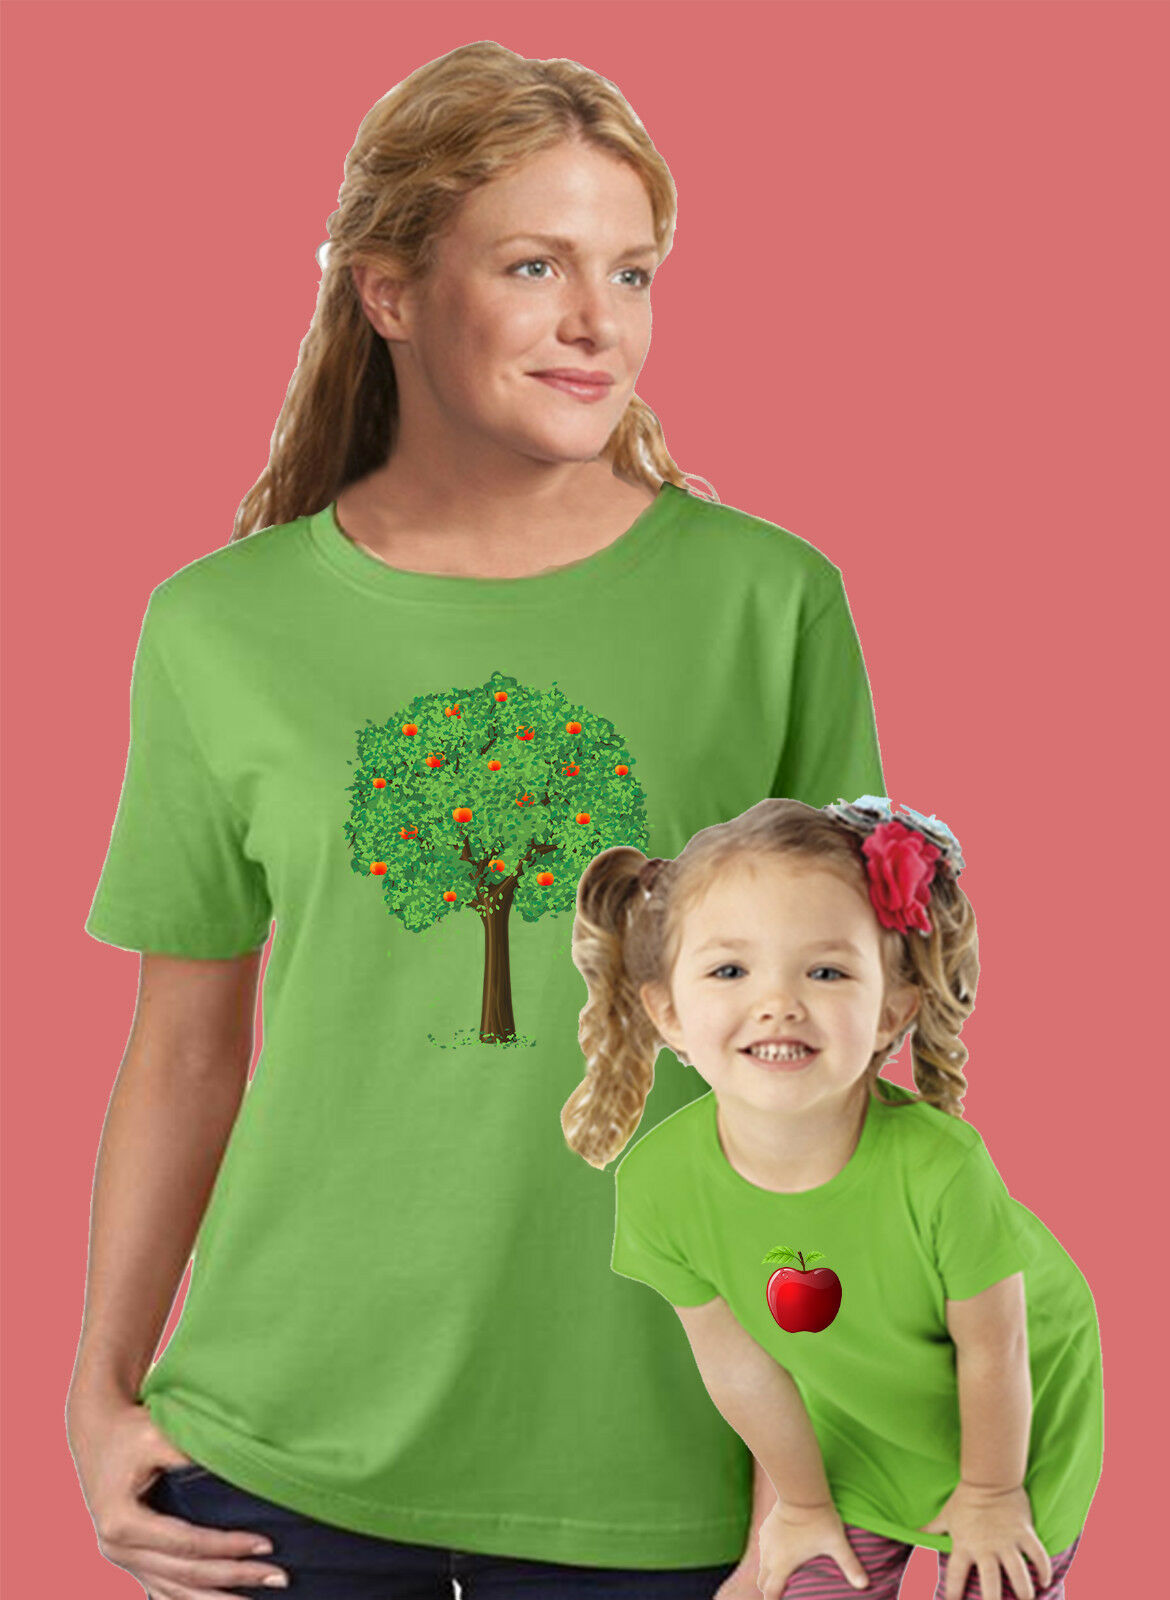 Ladies t shirts - toddler t-shirts - Mother's day t-shirts - daughter t-shirts